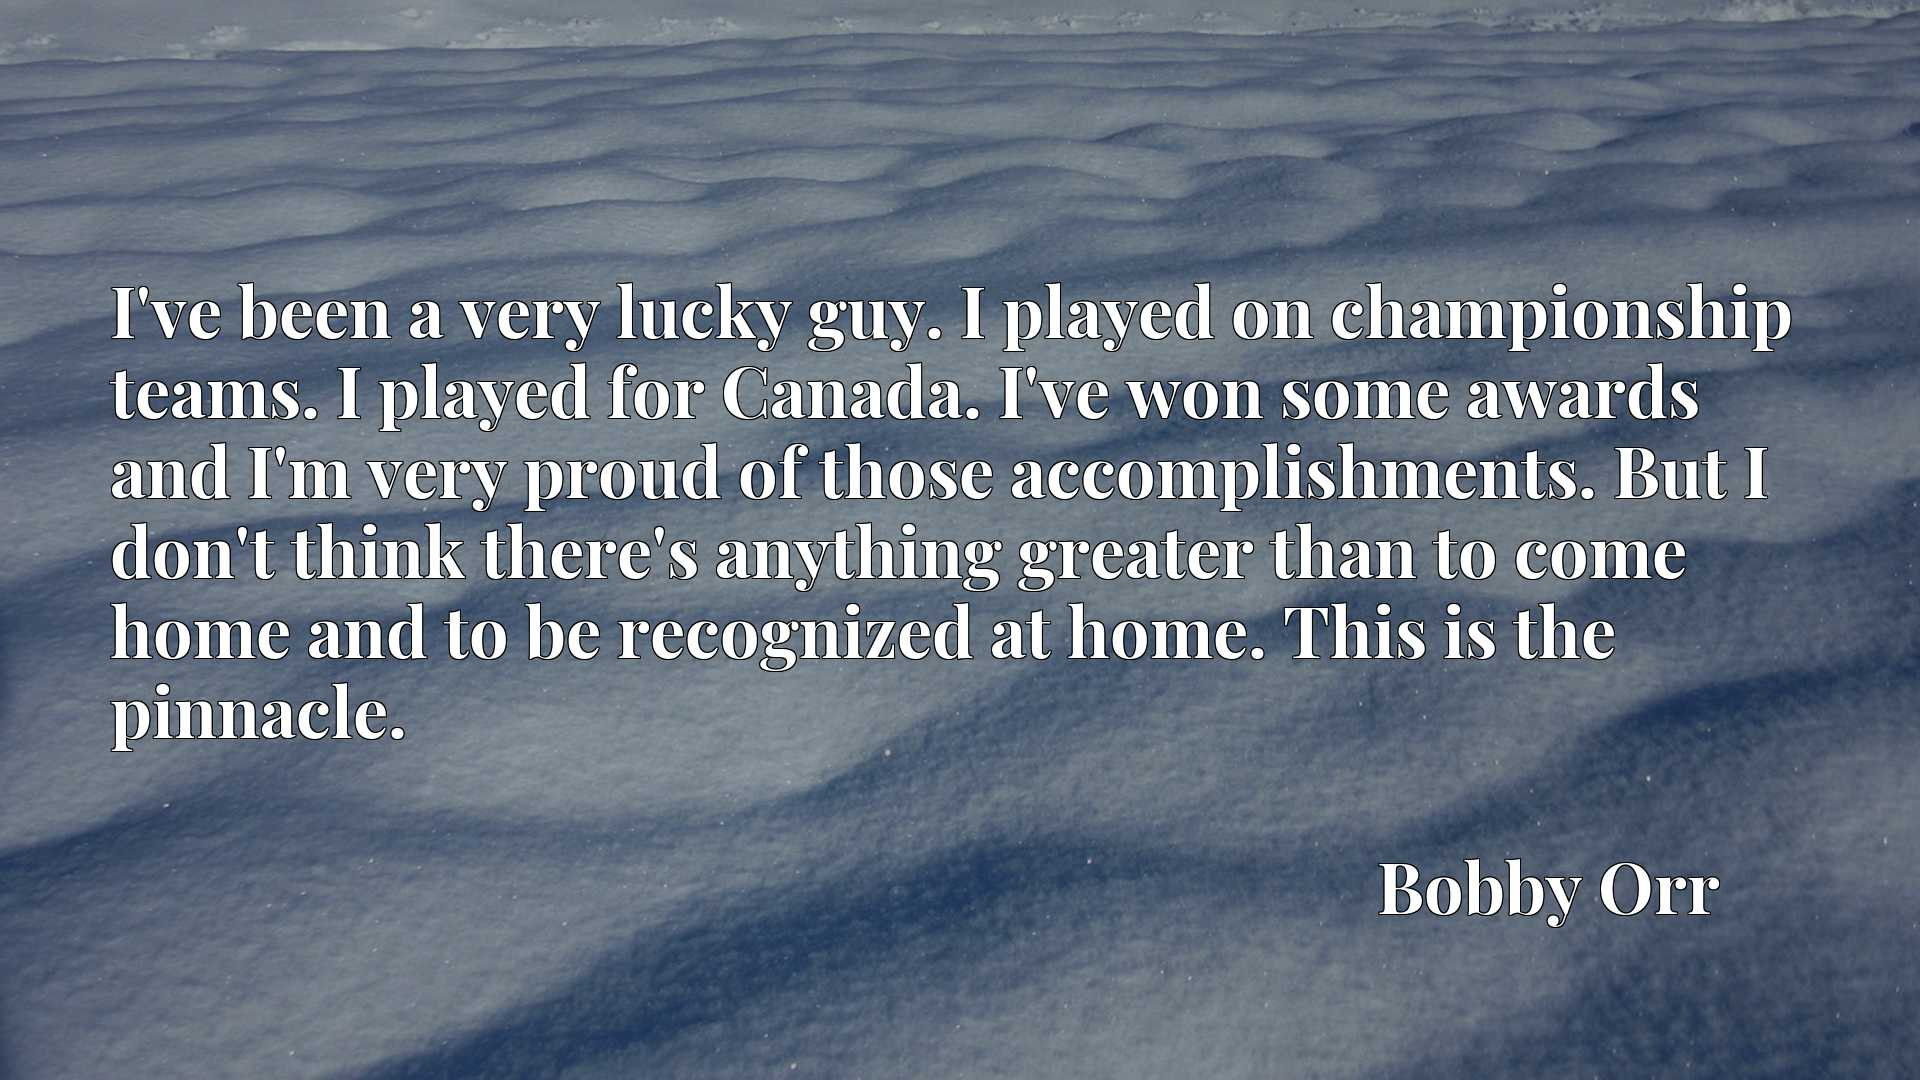 I've been a very lucky guy. I played on championship teams. I played for Canada. I've won some awards and I'm very proud of those accomplishments. But I don't think there's anything greater than to come home and to be recognized at home. This is the pinnacle.